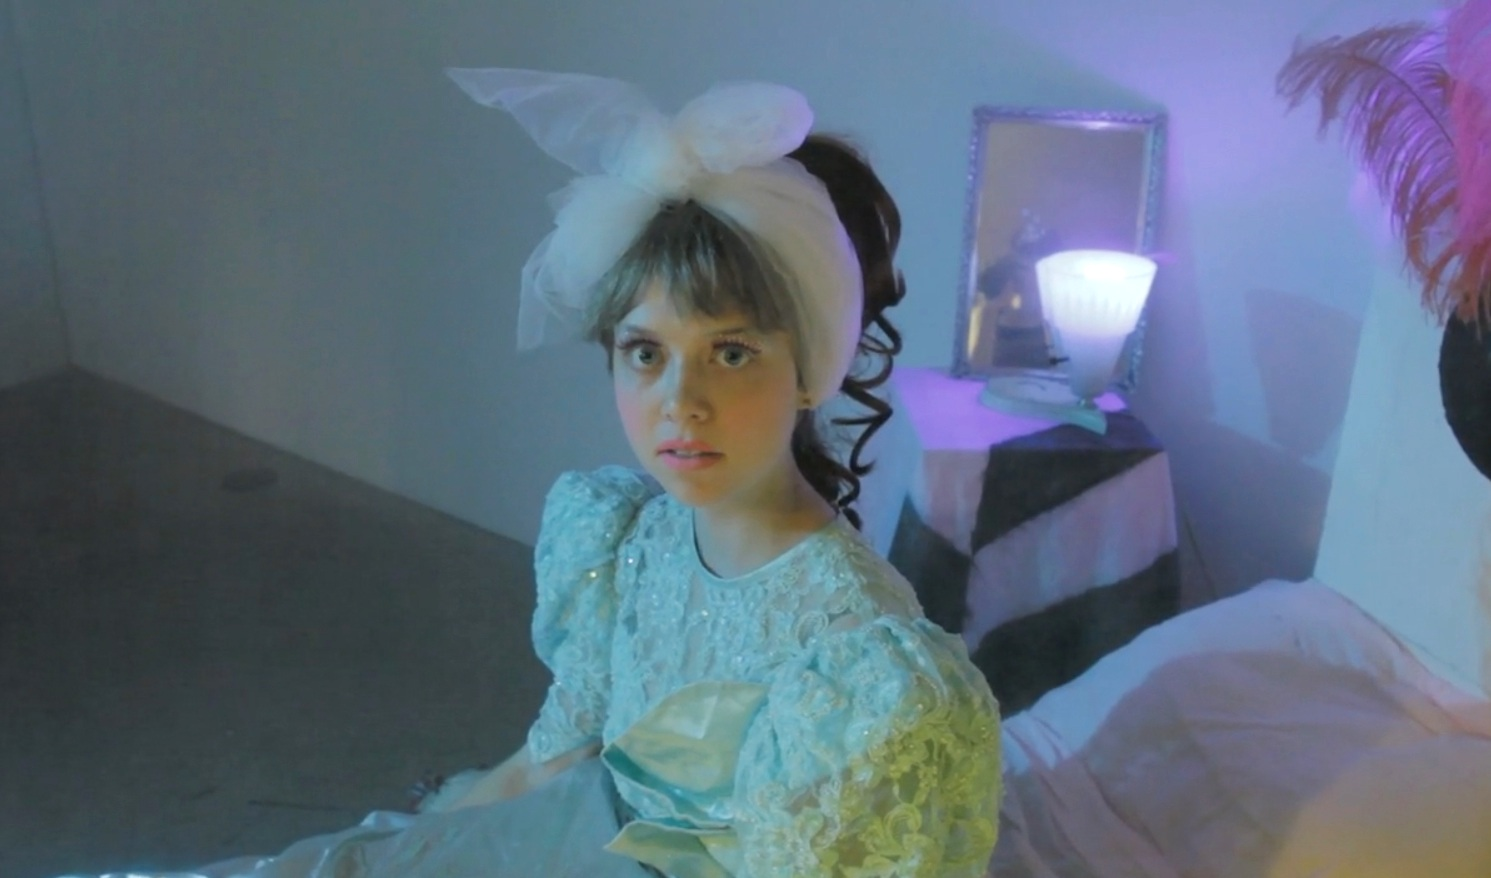 """Video still from """"Shadow of a Woman"""", Prom Girl played by Michele Ayoub (pictured)."""